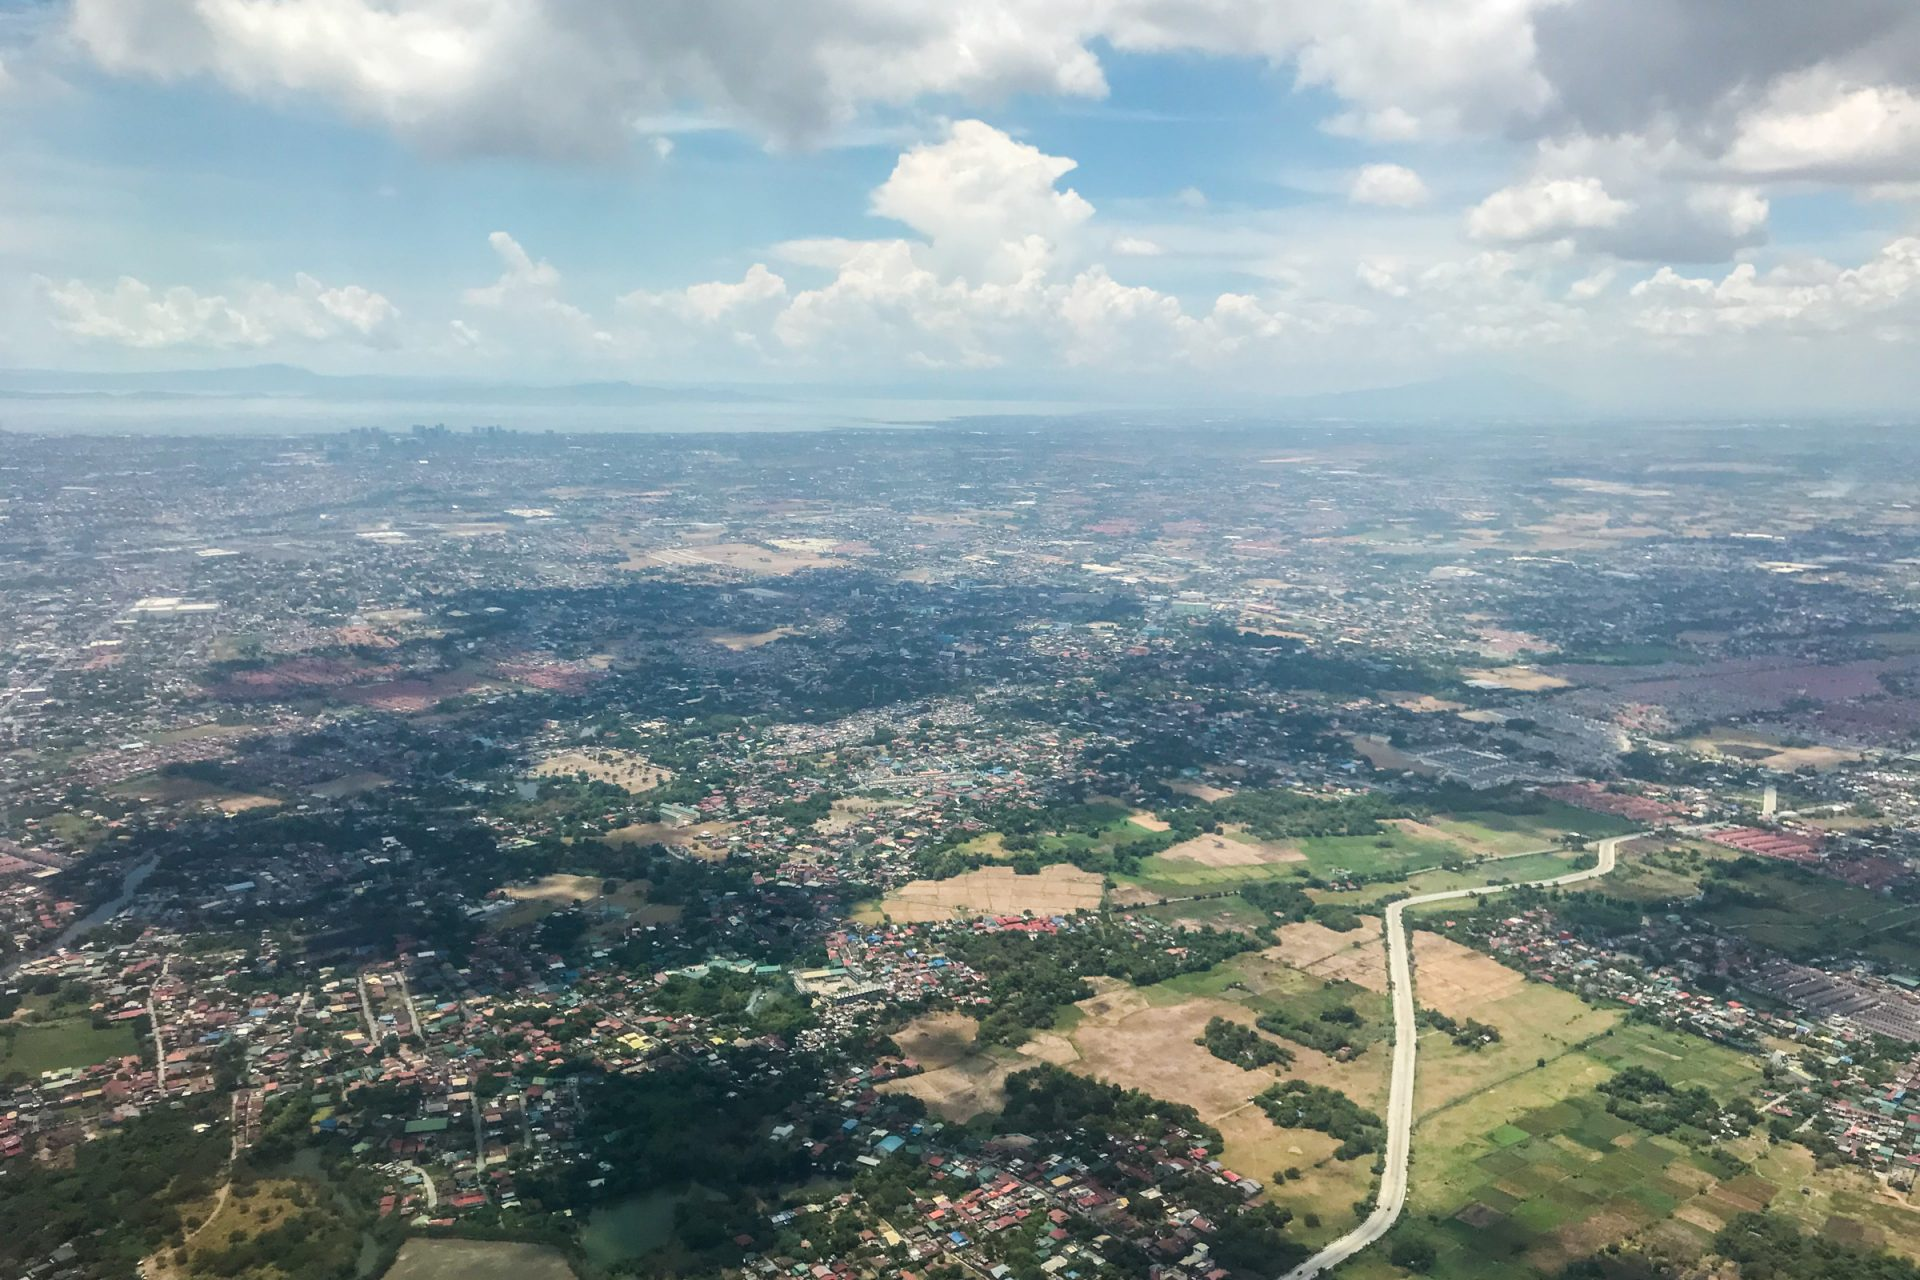 Bird's Eye View Of Scattered Urban Areas